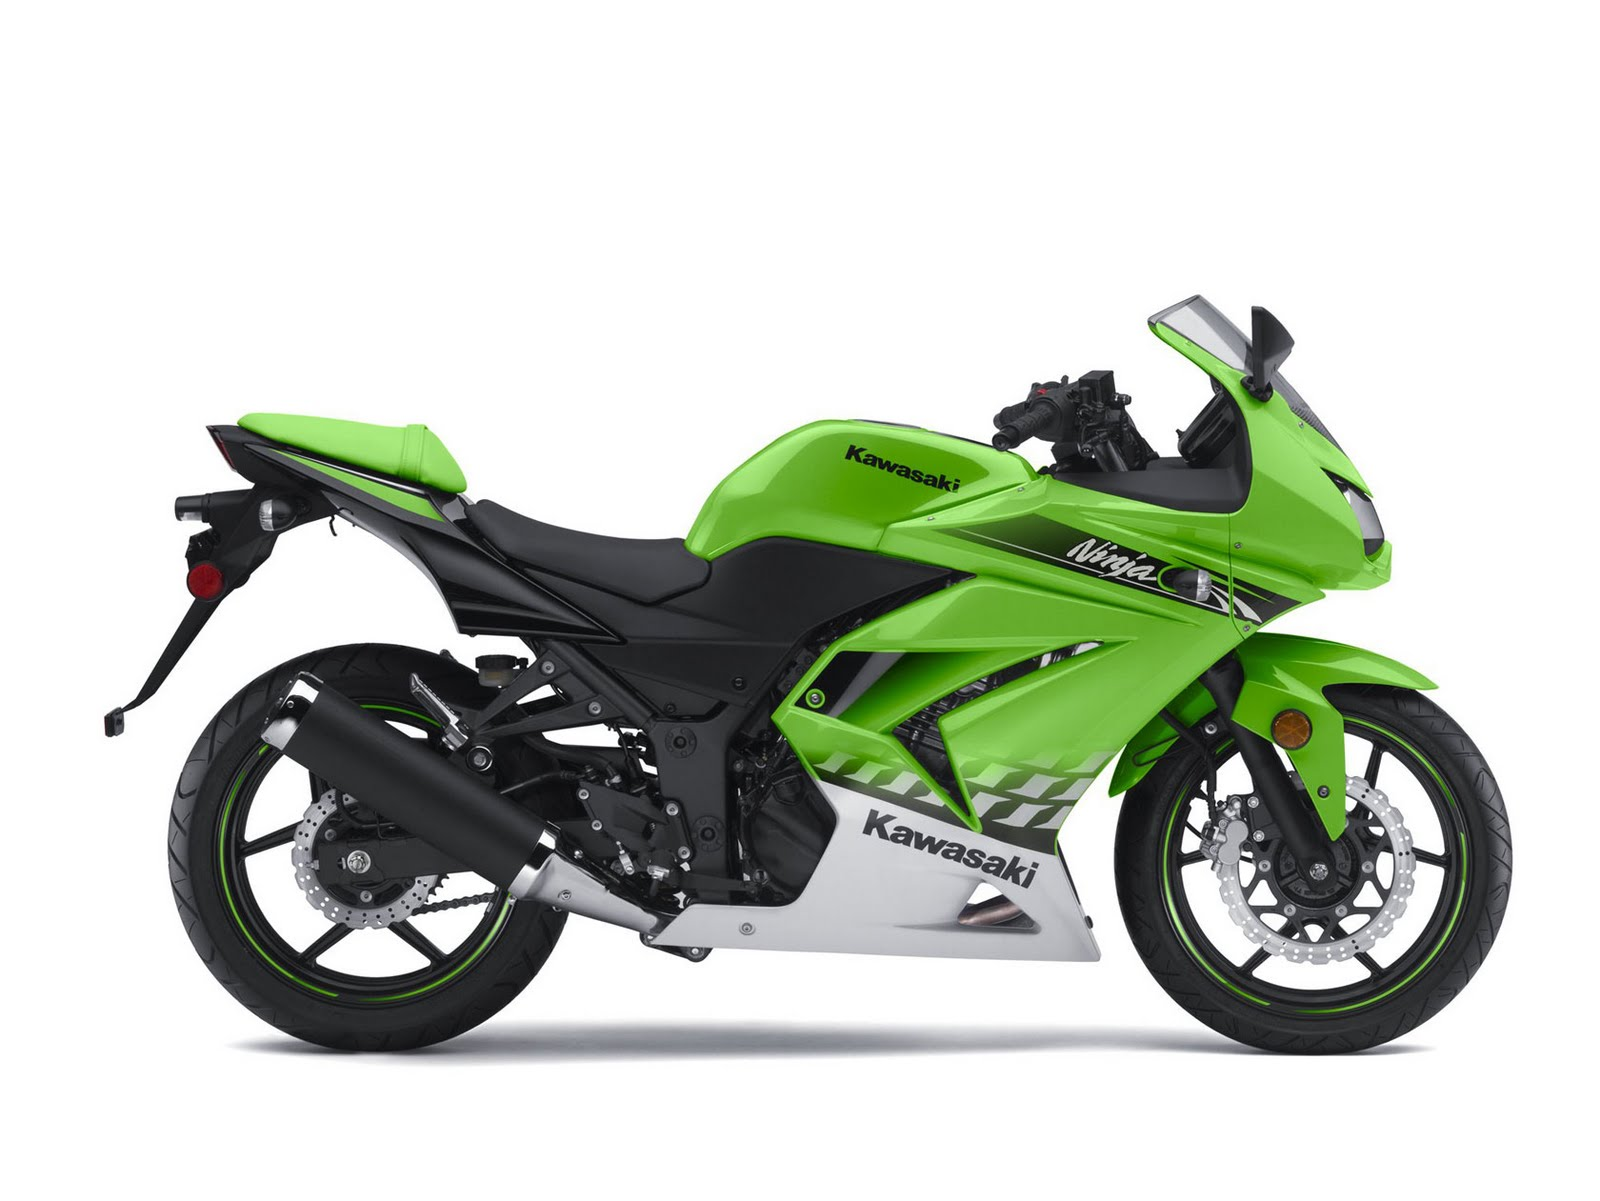 suzuki gsx r1000 blogs 2010 kawasaki ninja 250r motorcycle pictures. Black Bedroom Furniture Sets. Home Design Ideas